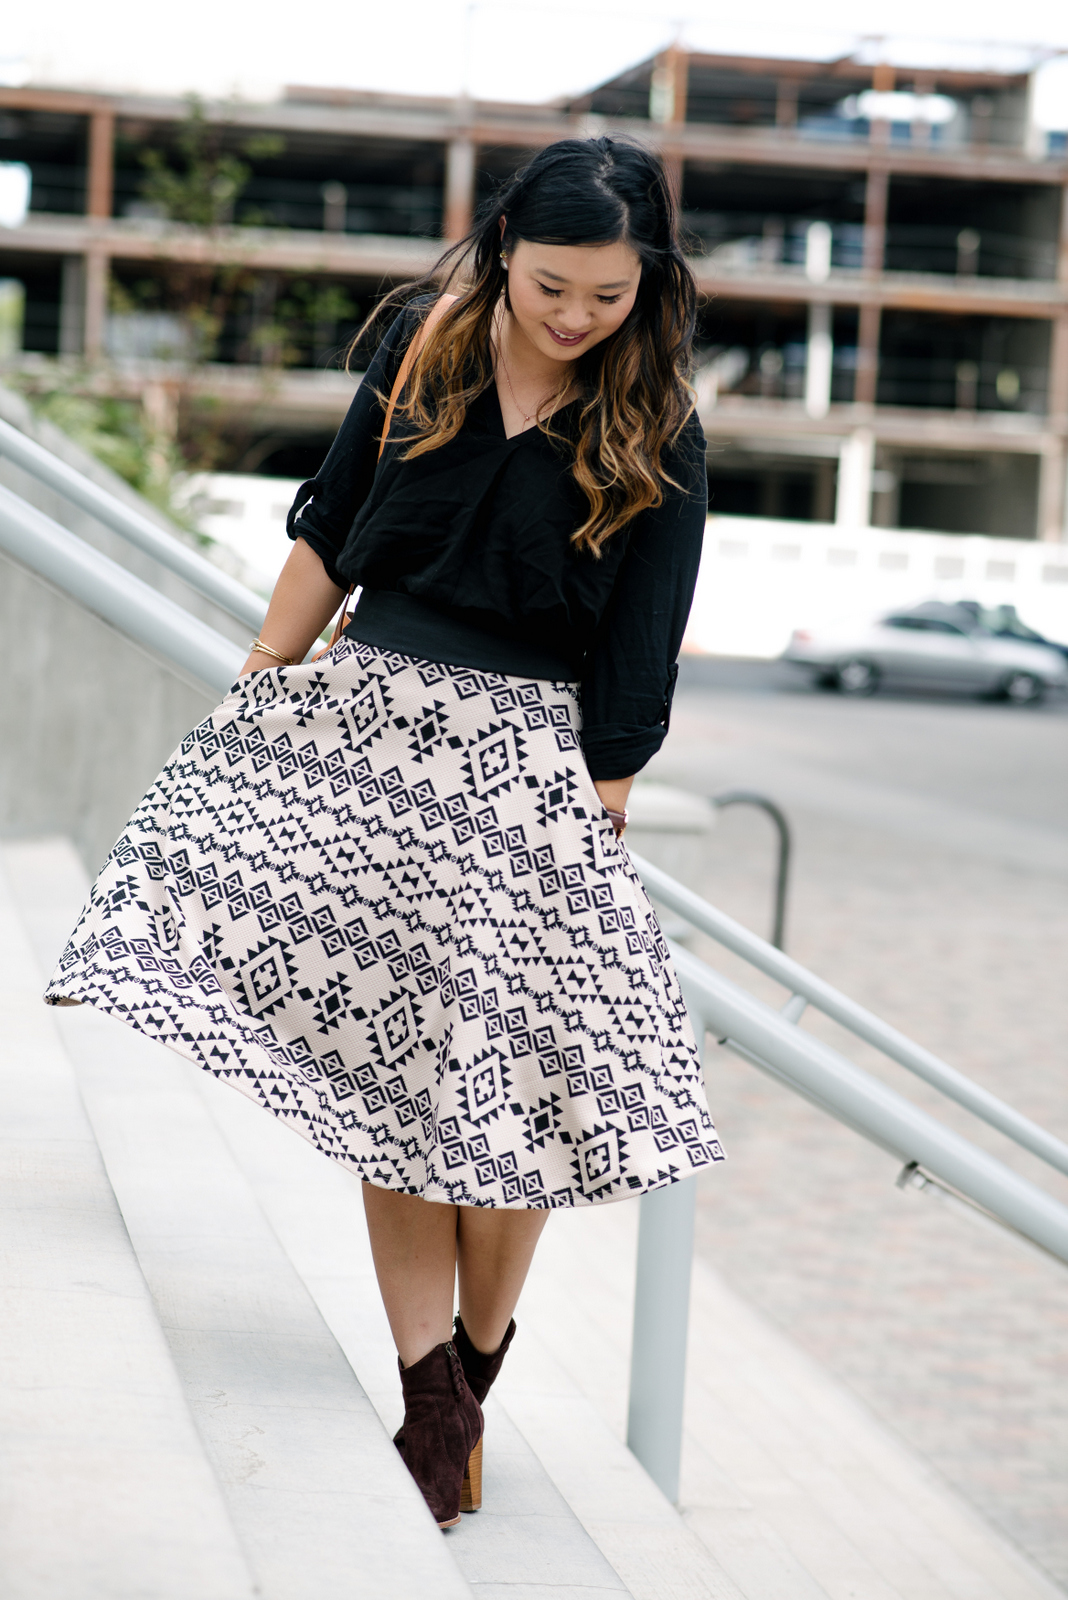 Wearing midi skirts for fall